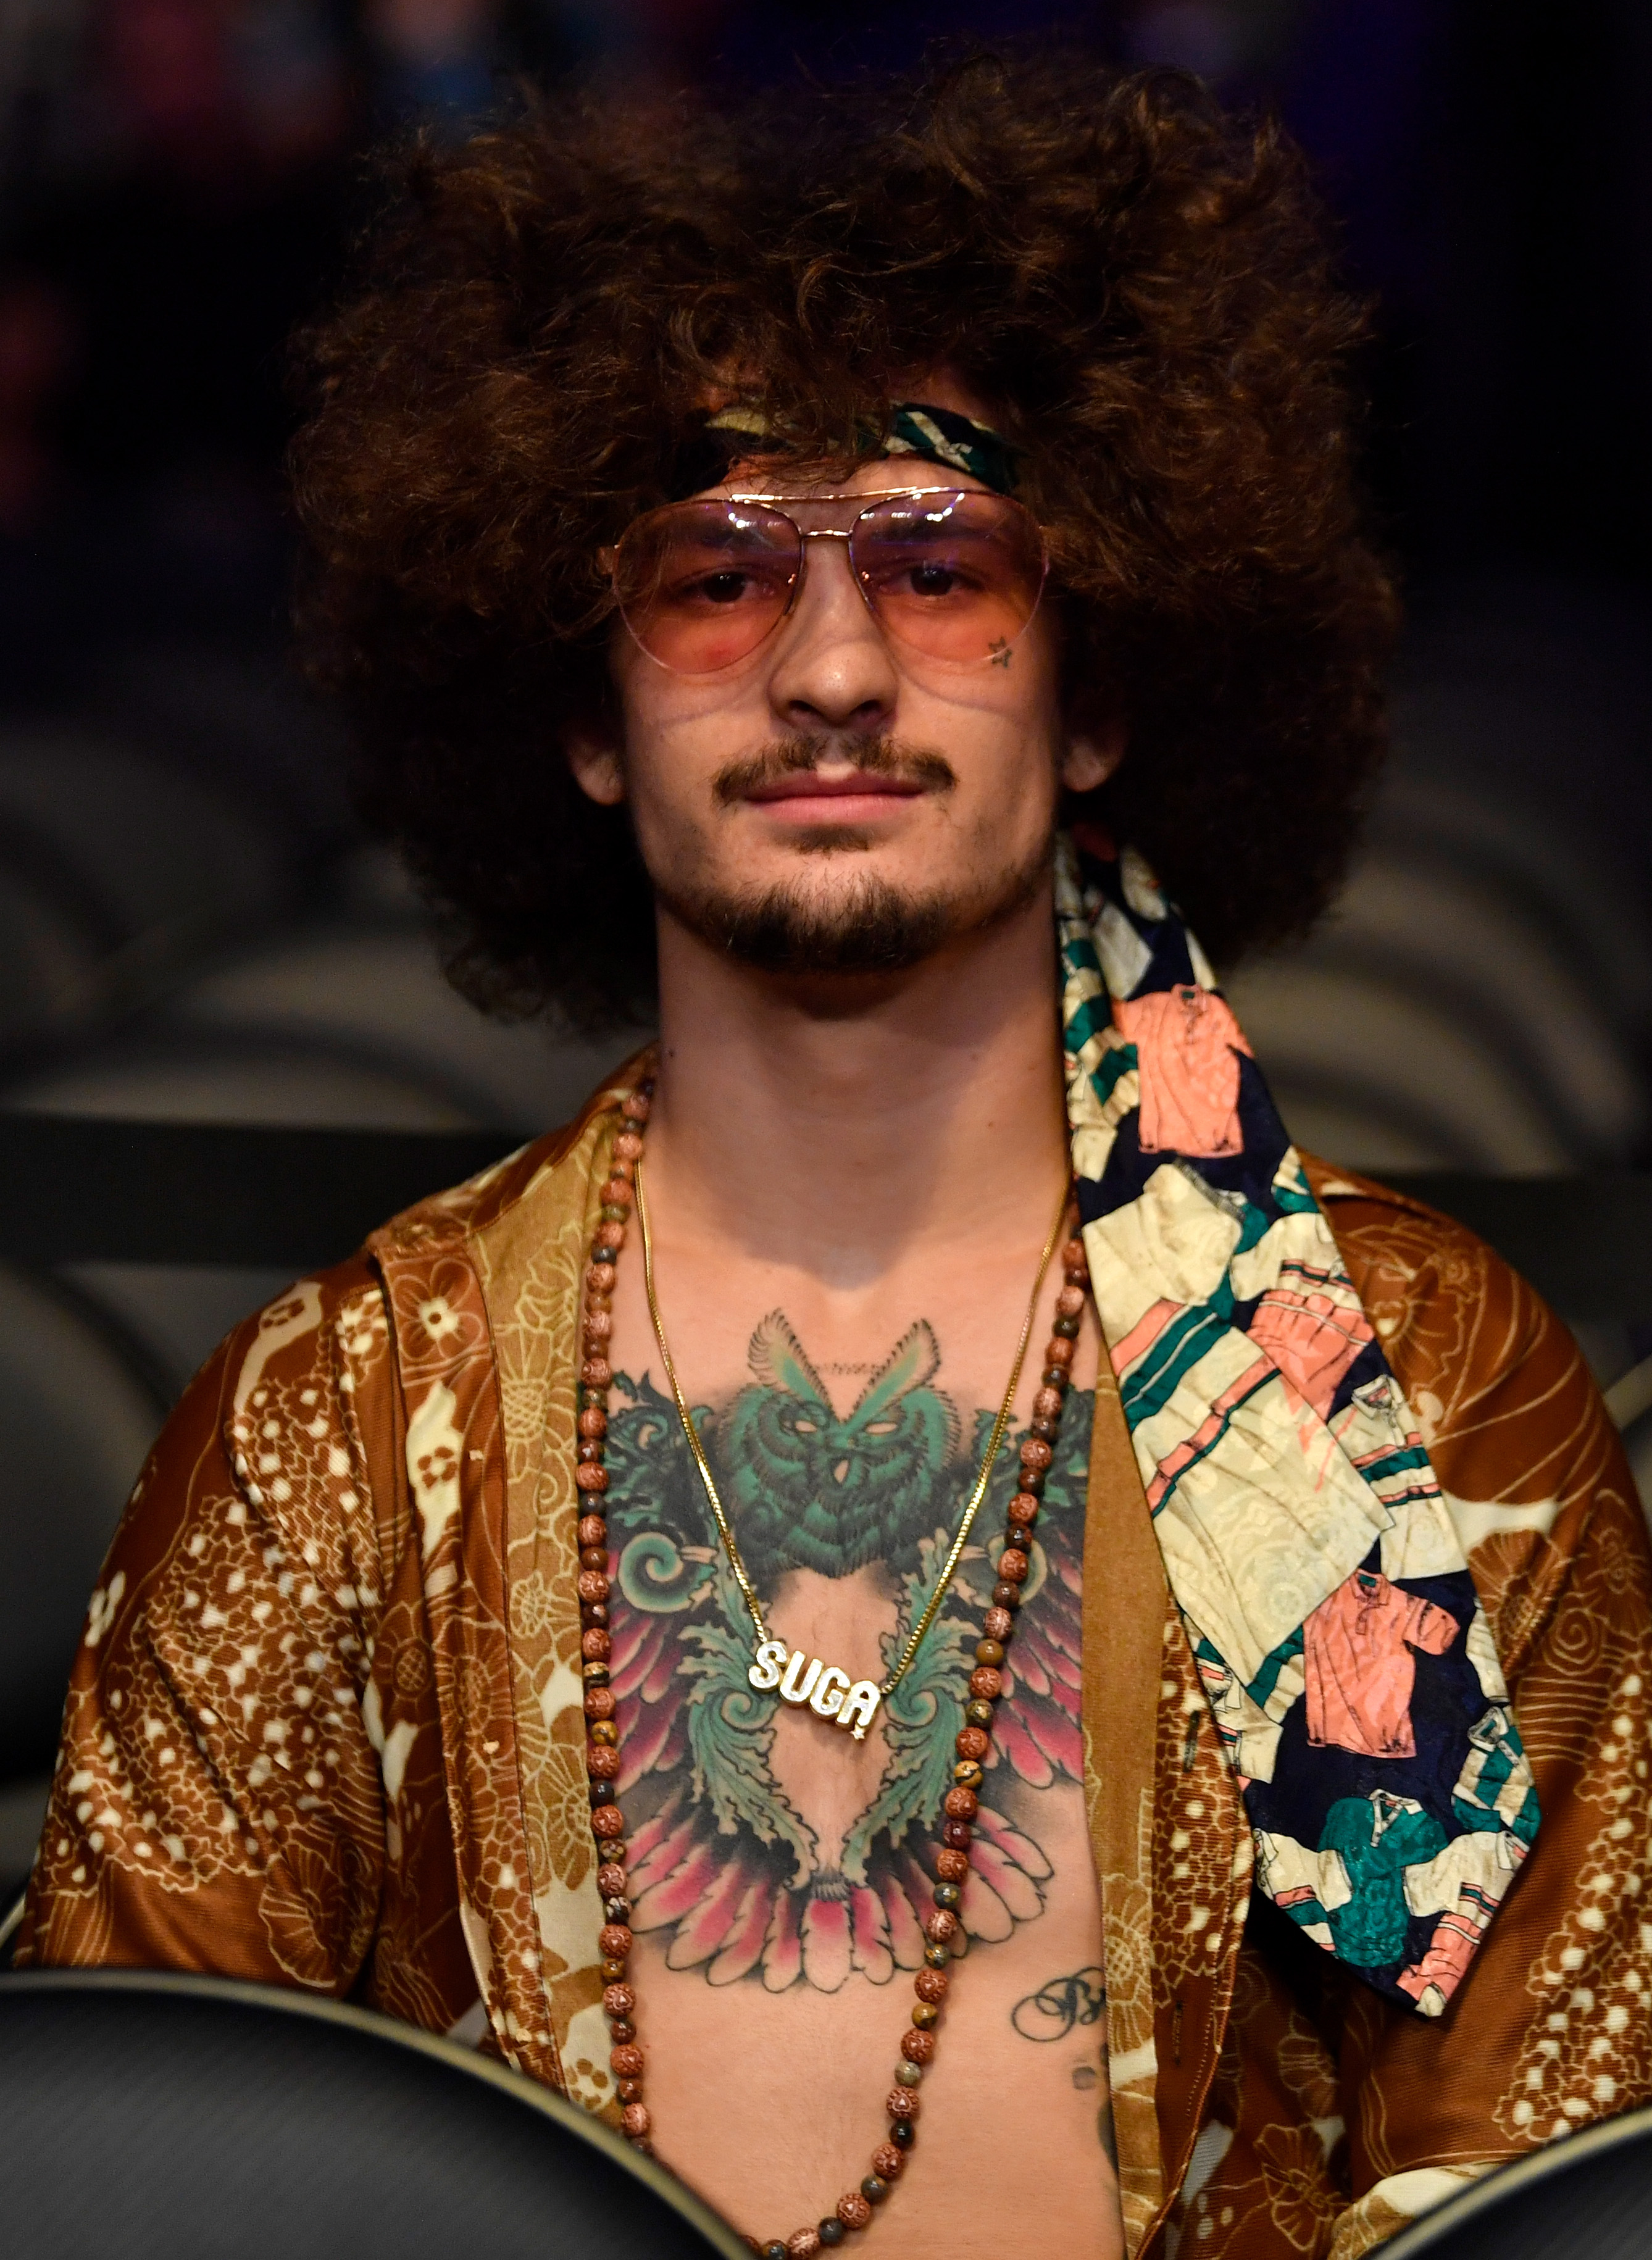 UFC bantamweight Sean O'Malley is seen in attendance during the UFC 227 event inside Staples Center on August 4, 2018 in Los Angeles, California.